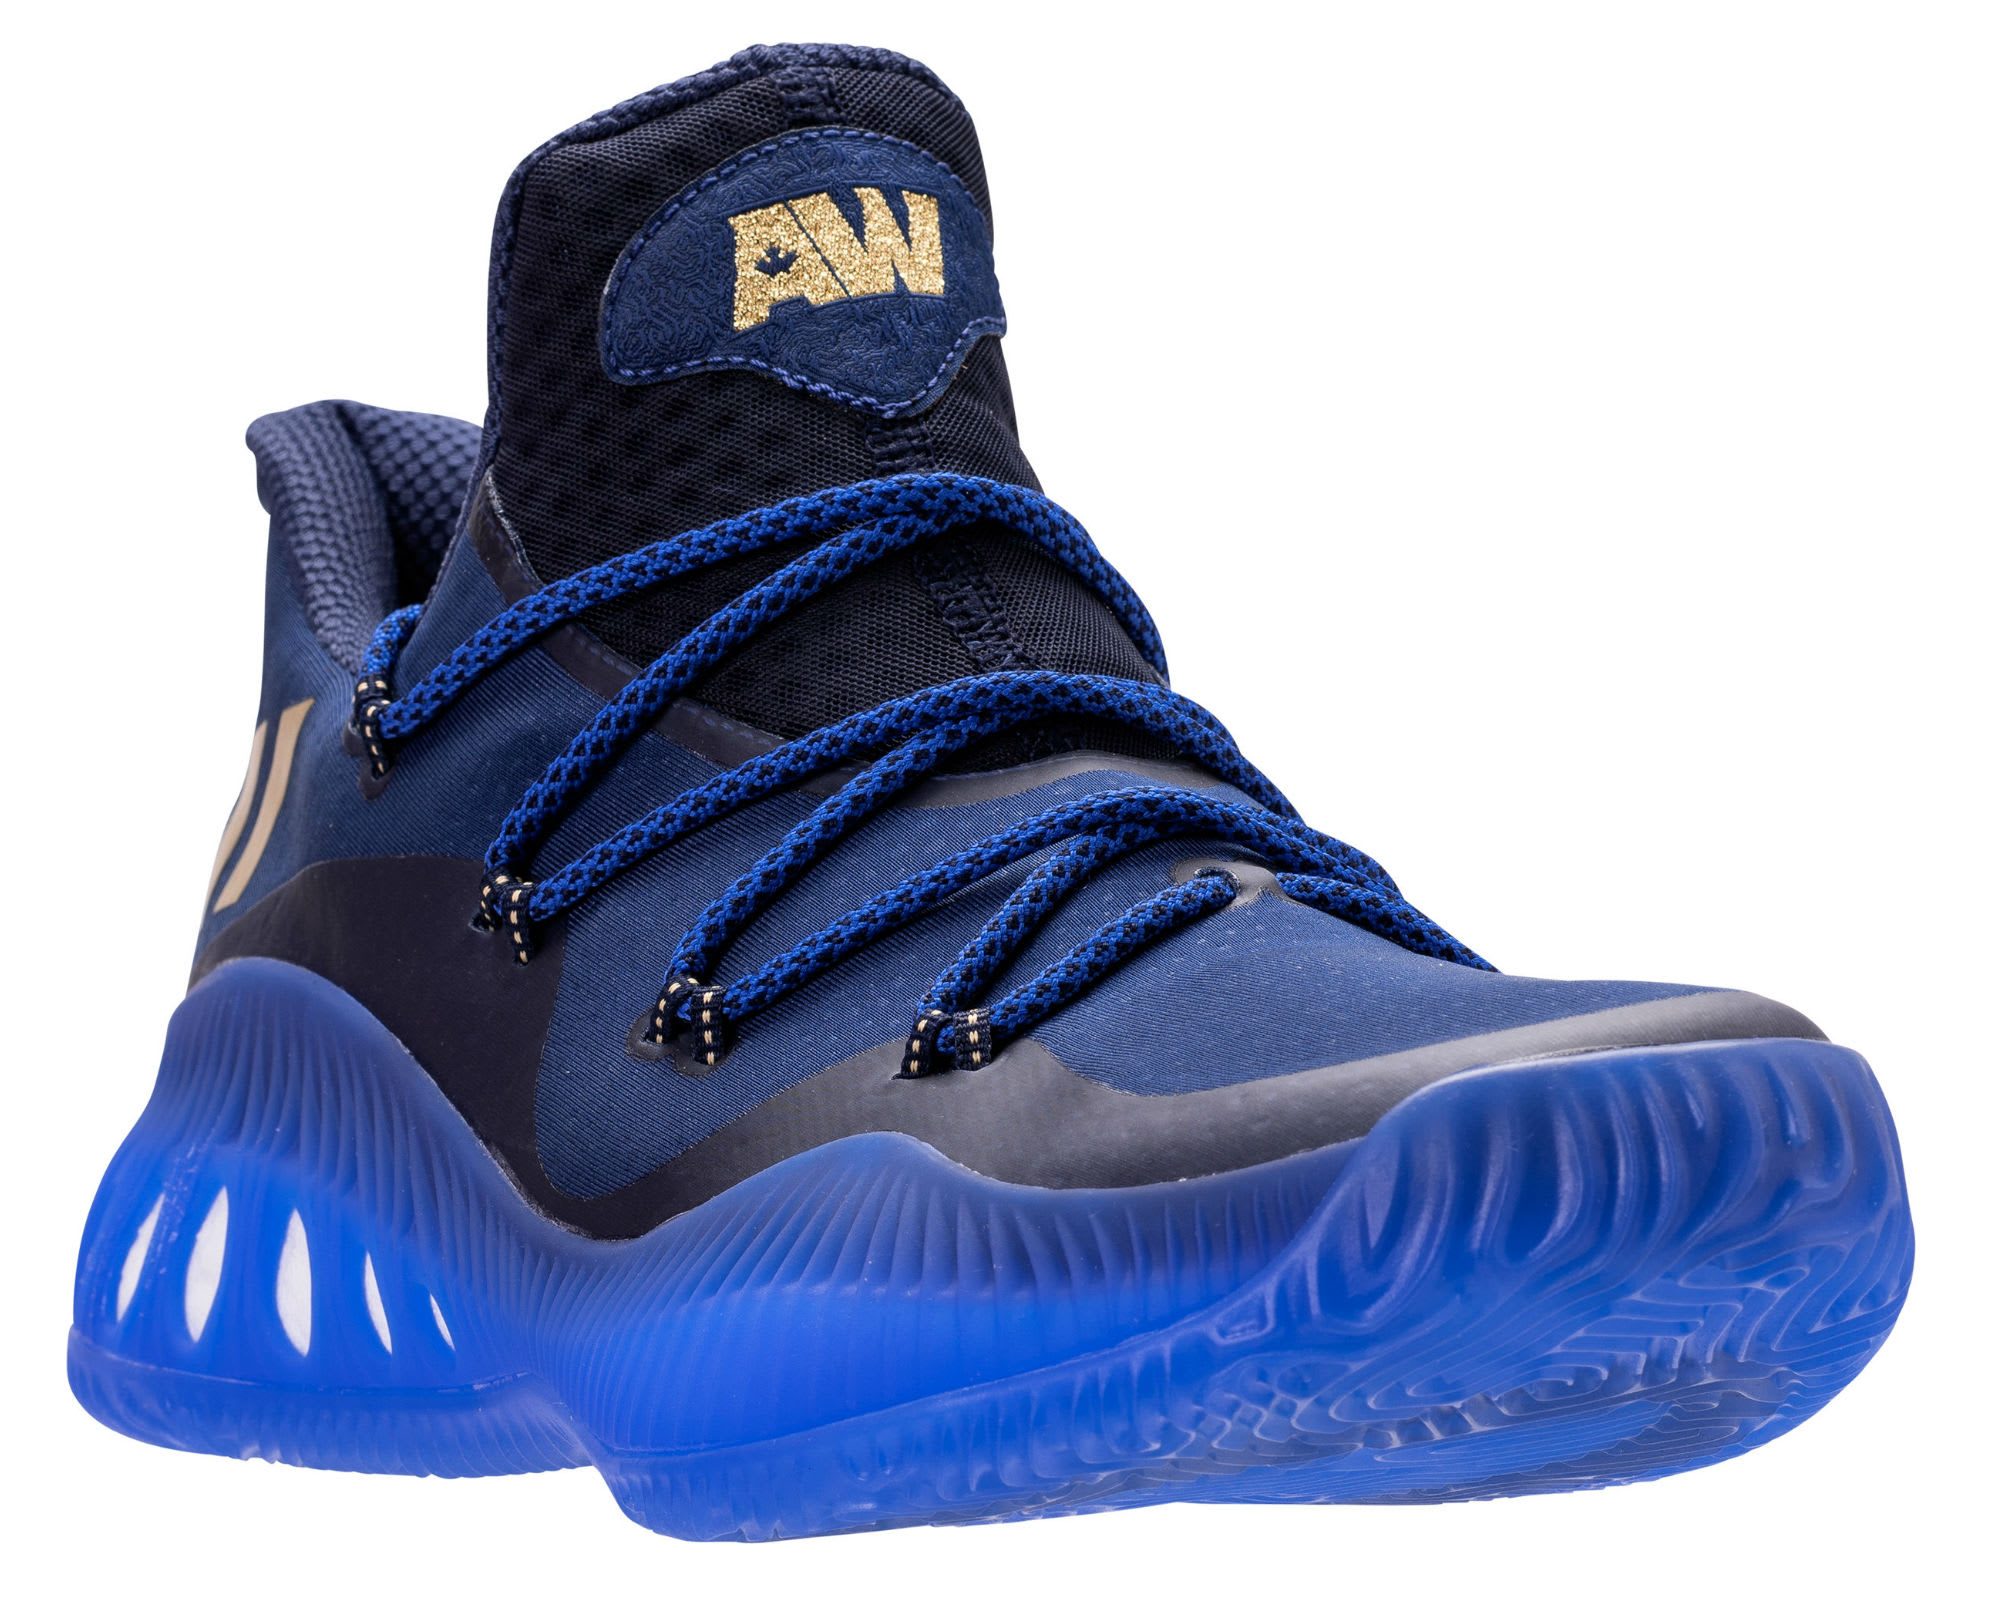 finest selection 25473 342eb Adidas Crazy Explosive Low Andrew Wiggins PE Main Release Date BW0571